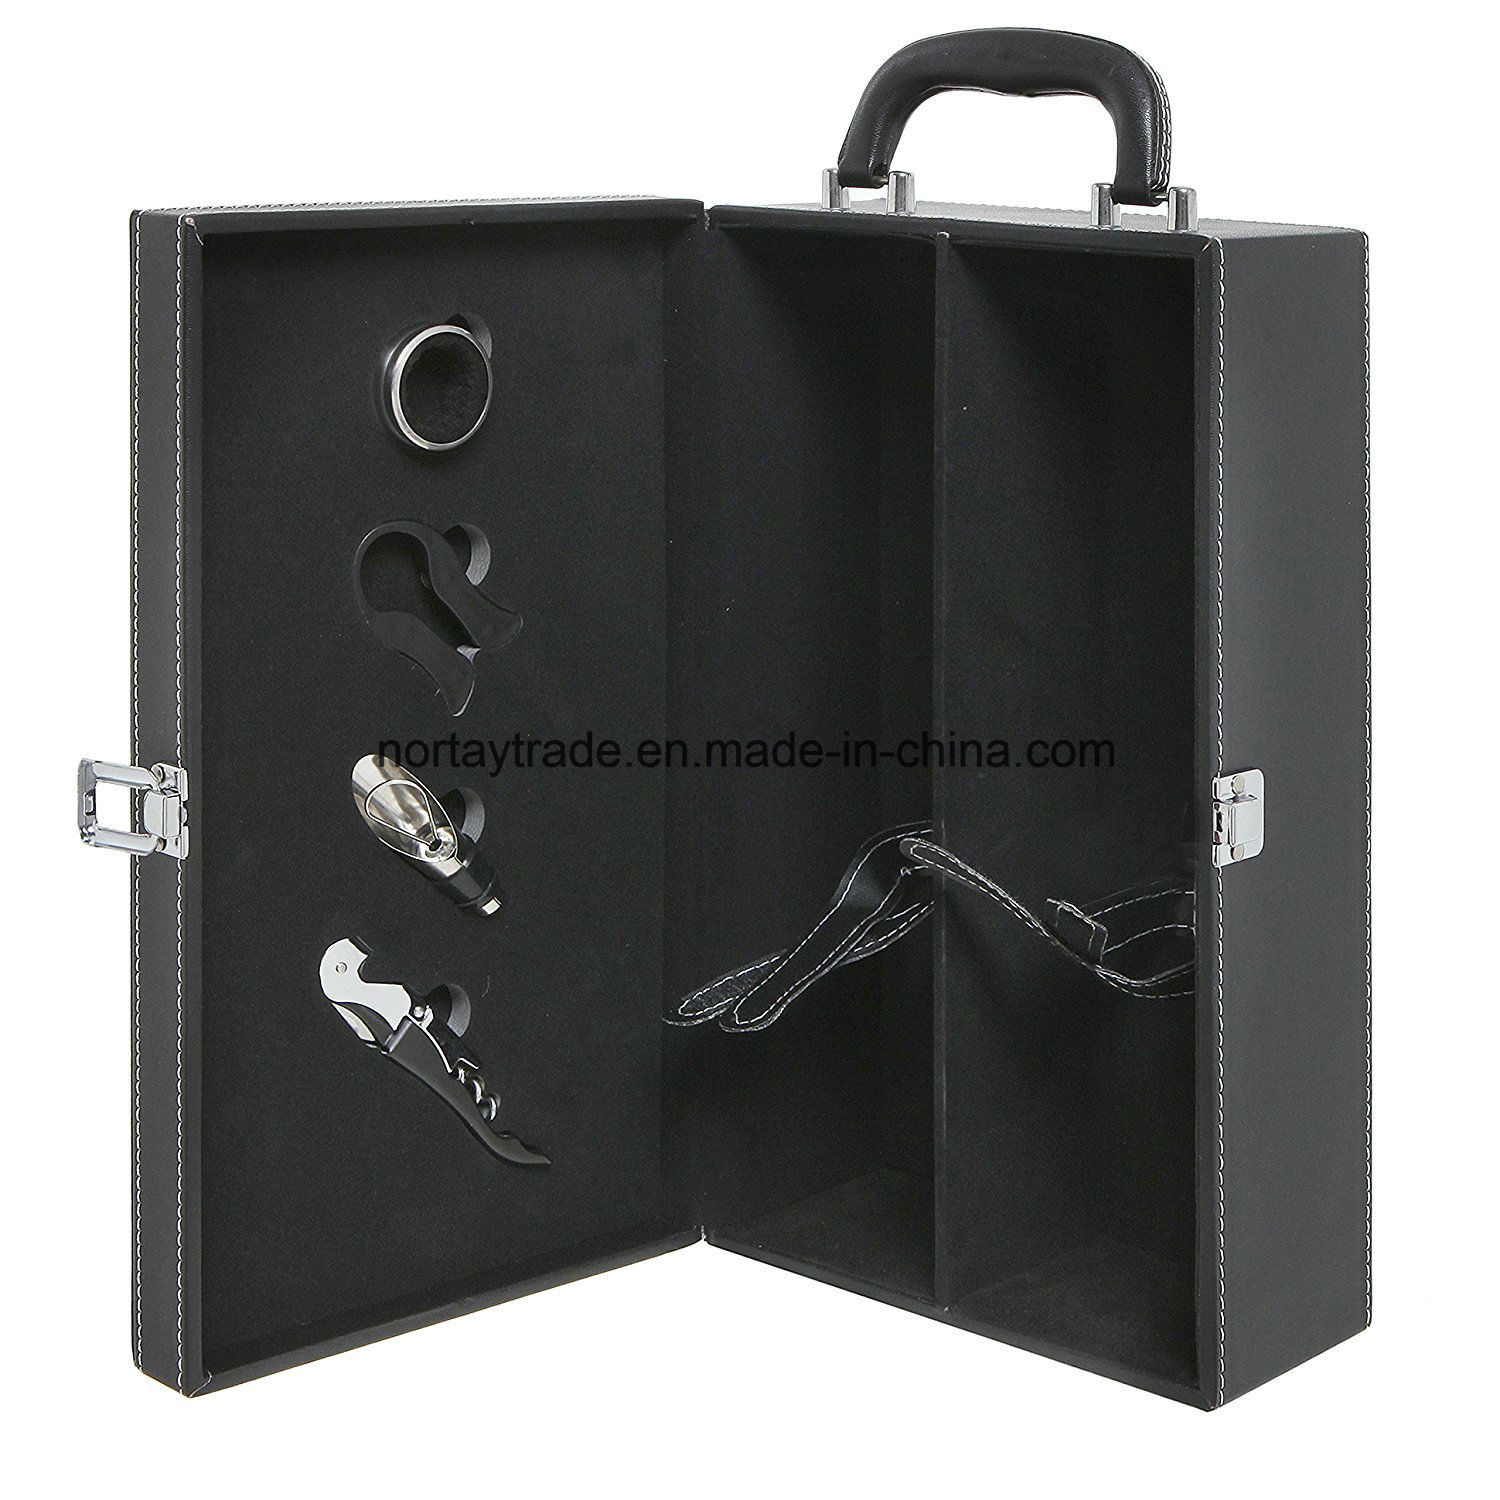 2-Bottle Modern Black Top Handle Travel Wine Carrier Box with 4 Piece Wine Accessory Set